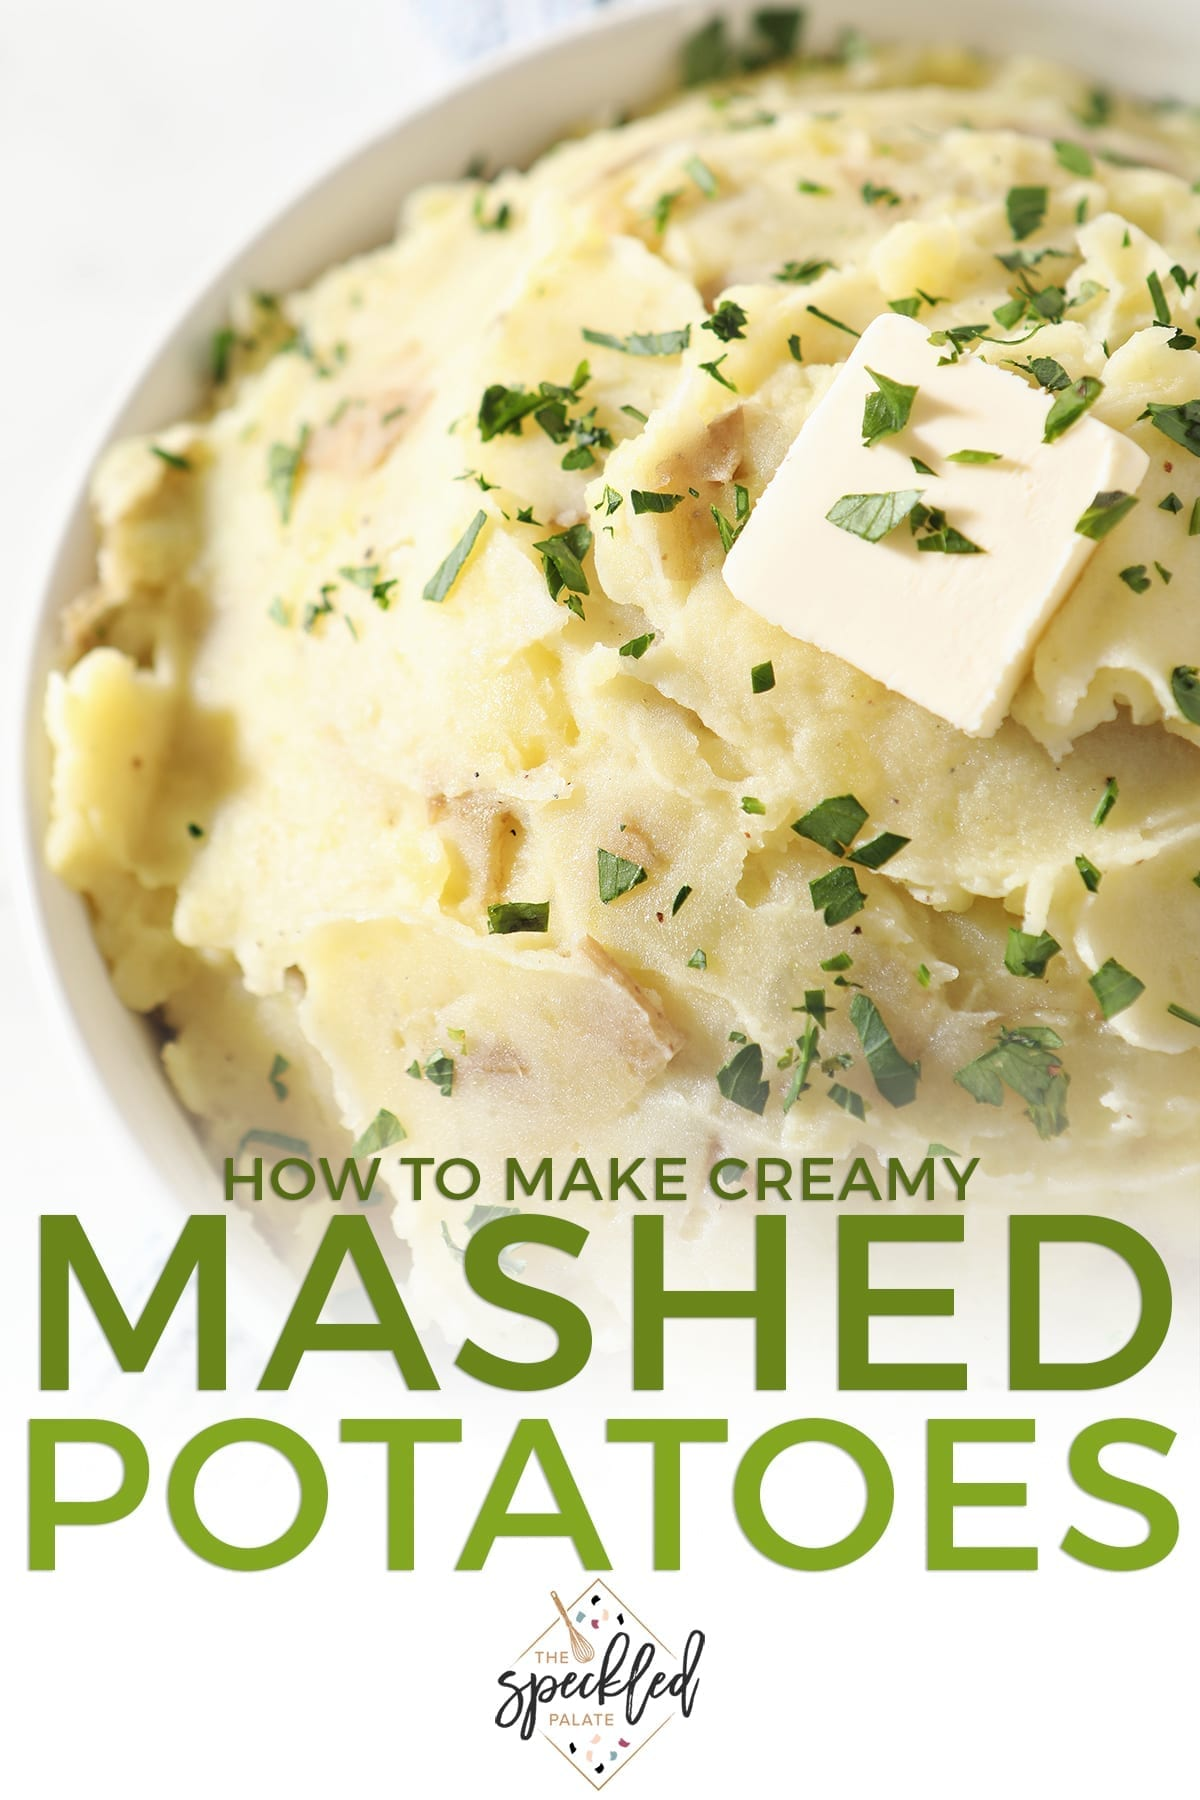 Close up of a white bowl holding mashed potatoes with a butter pat on top with the text 'how to make creamy mashed potatoes'